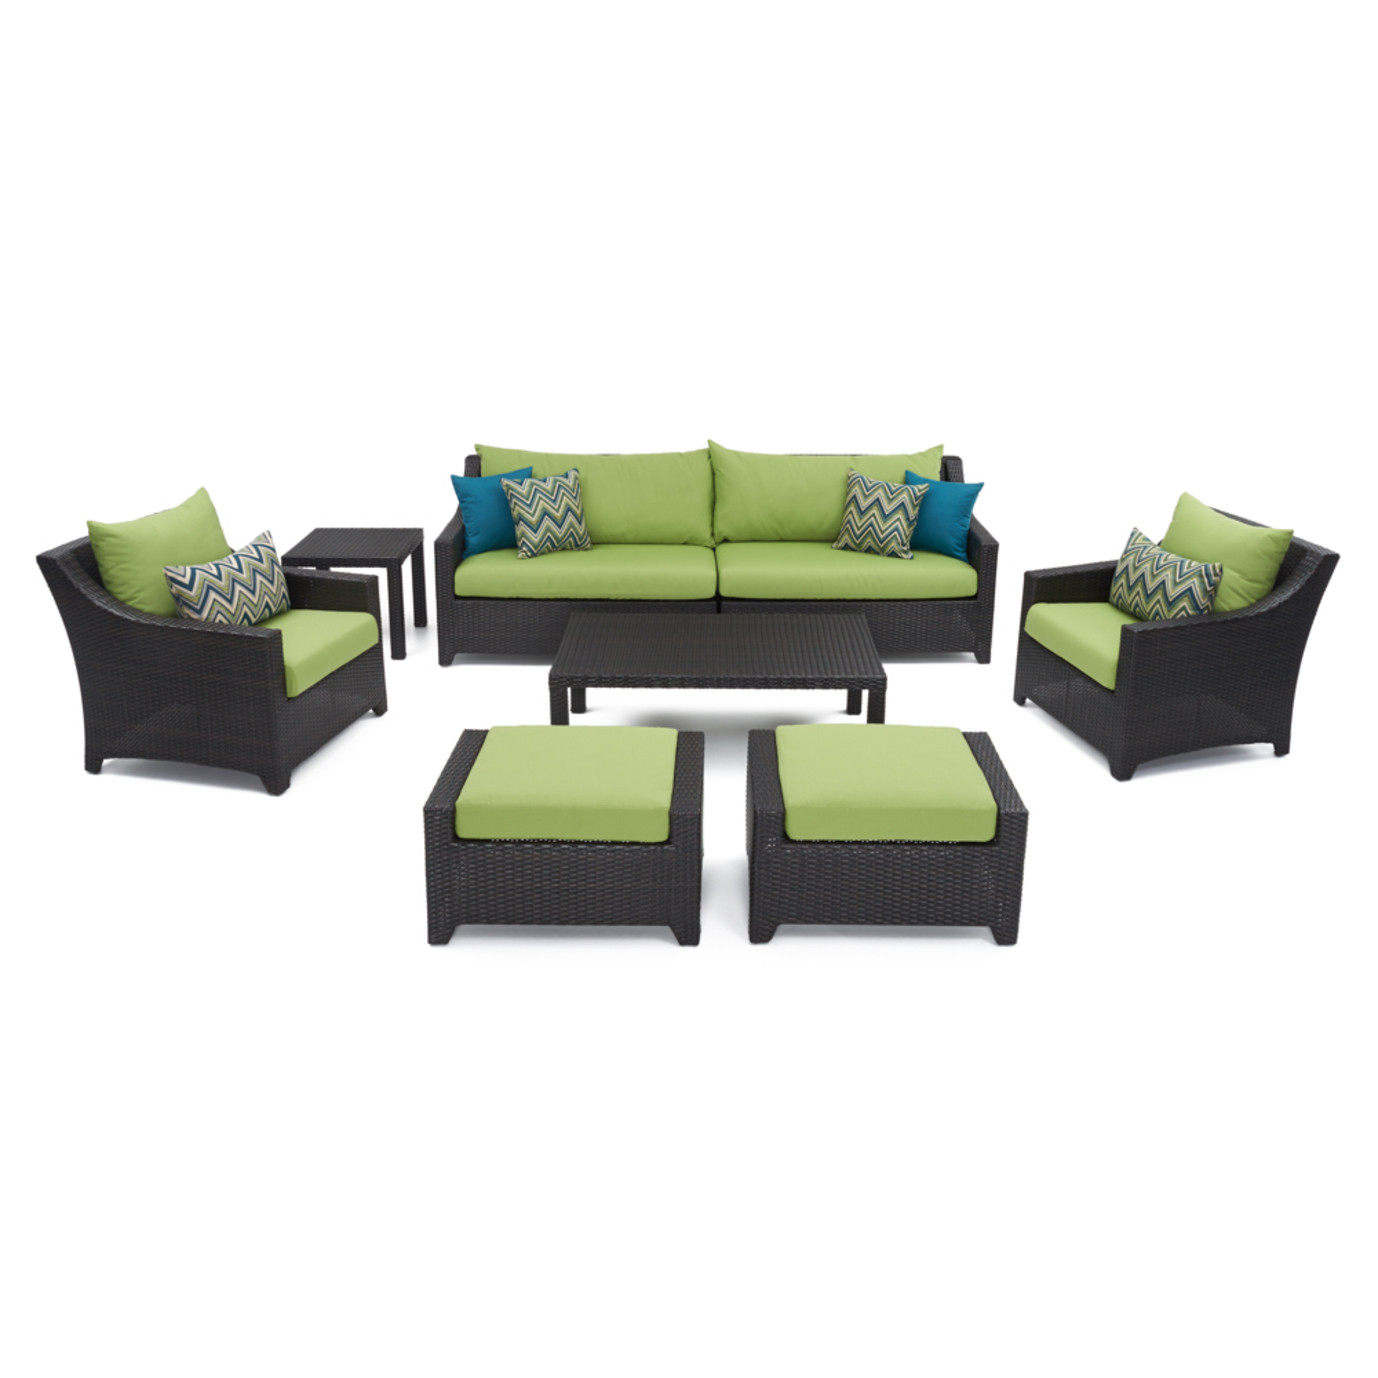 Deco™ 8pc Sofa Set with Furniture Covers - Ginkgo Green